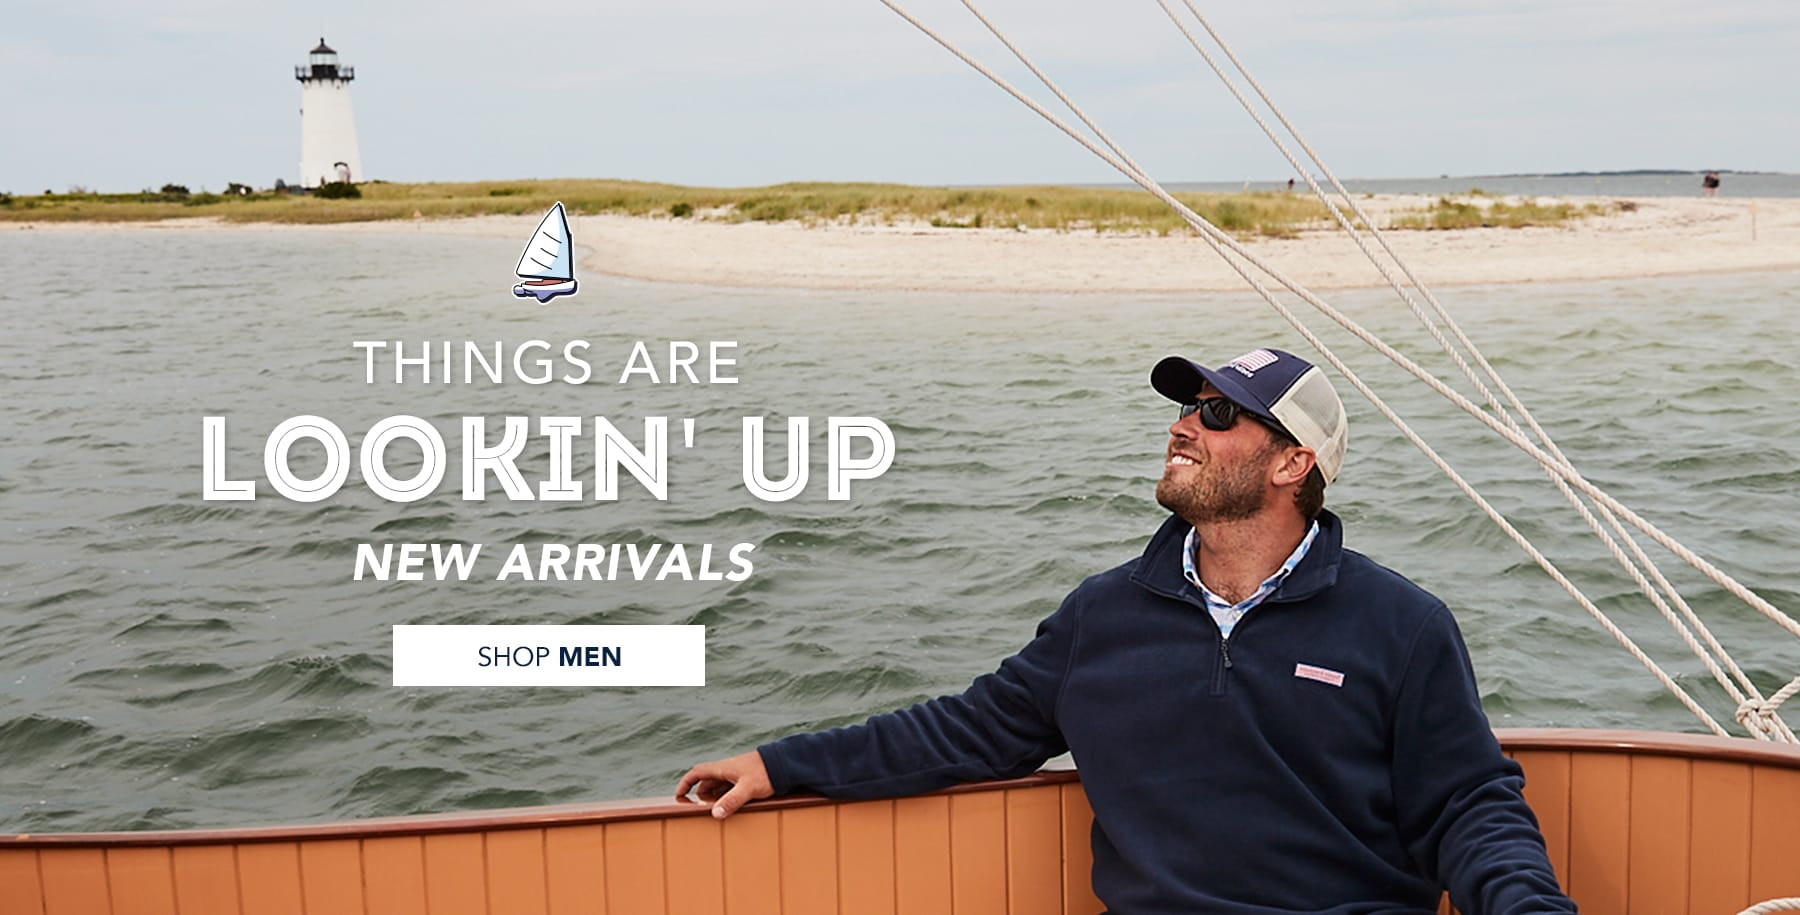 Things are lookin' up. New Arrivals for Men. Click here to shop Men's Clothing.